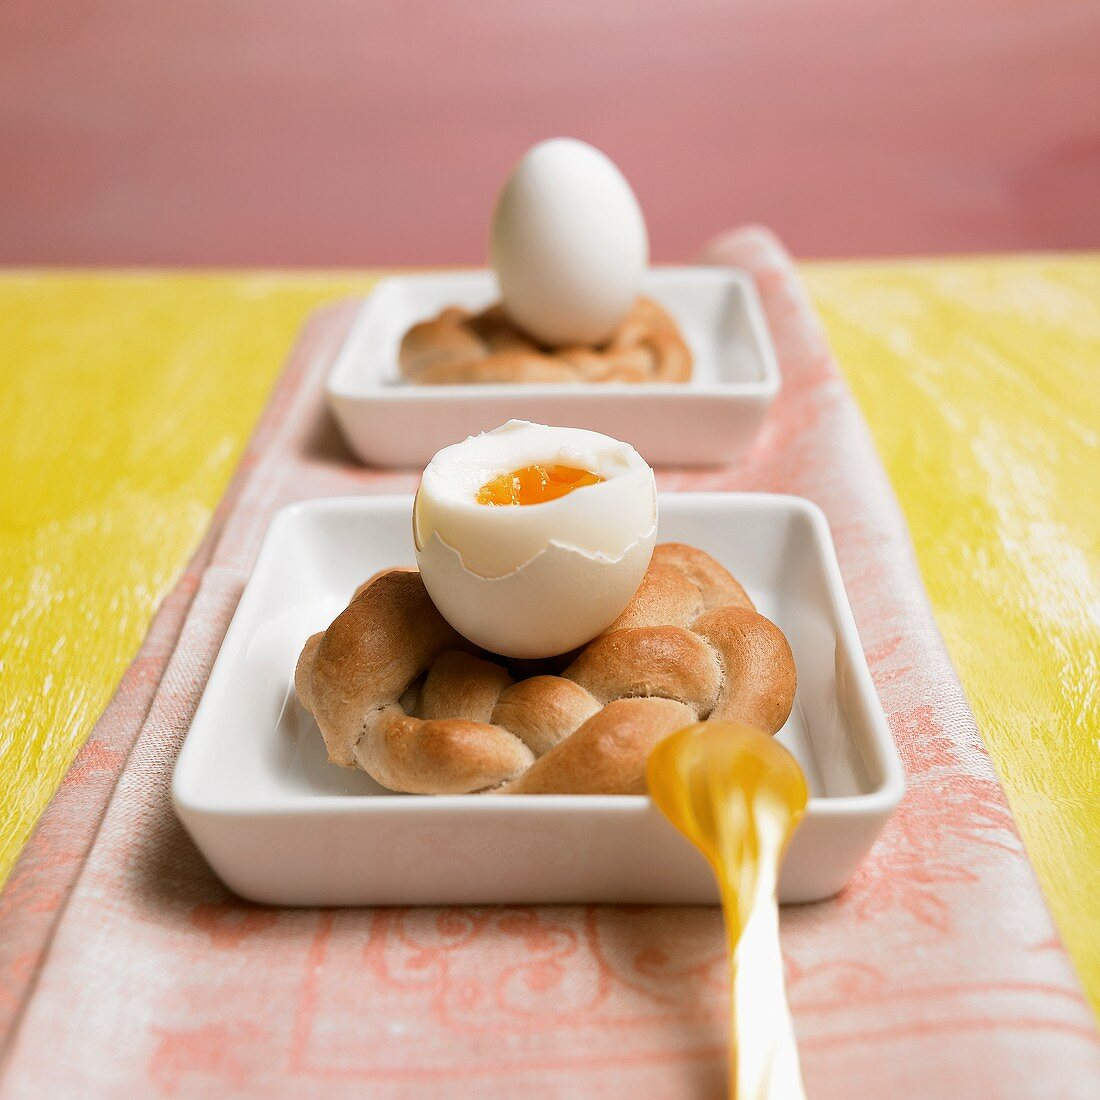 Opened breakfast egg with a home-baked eggcup